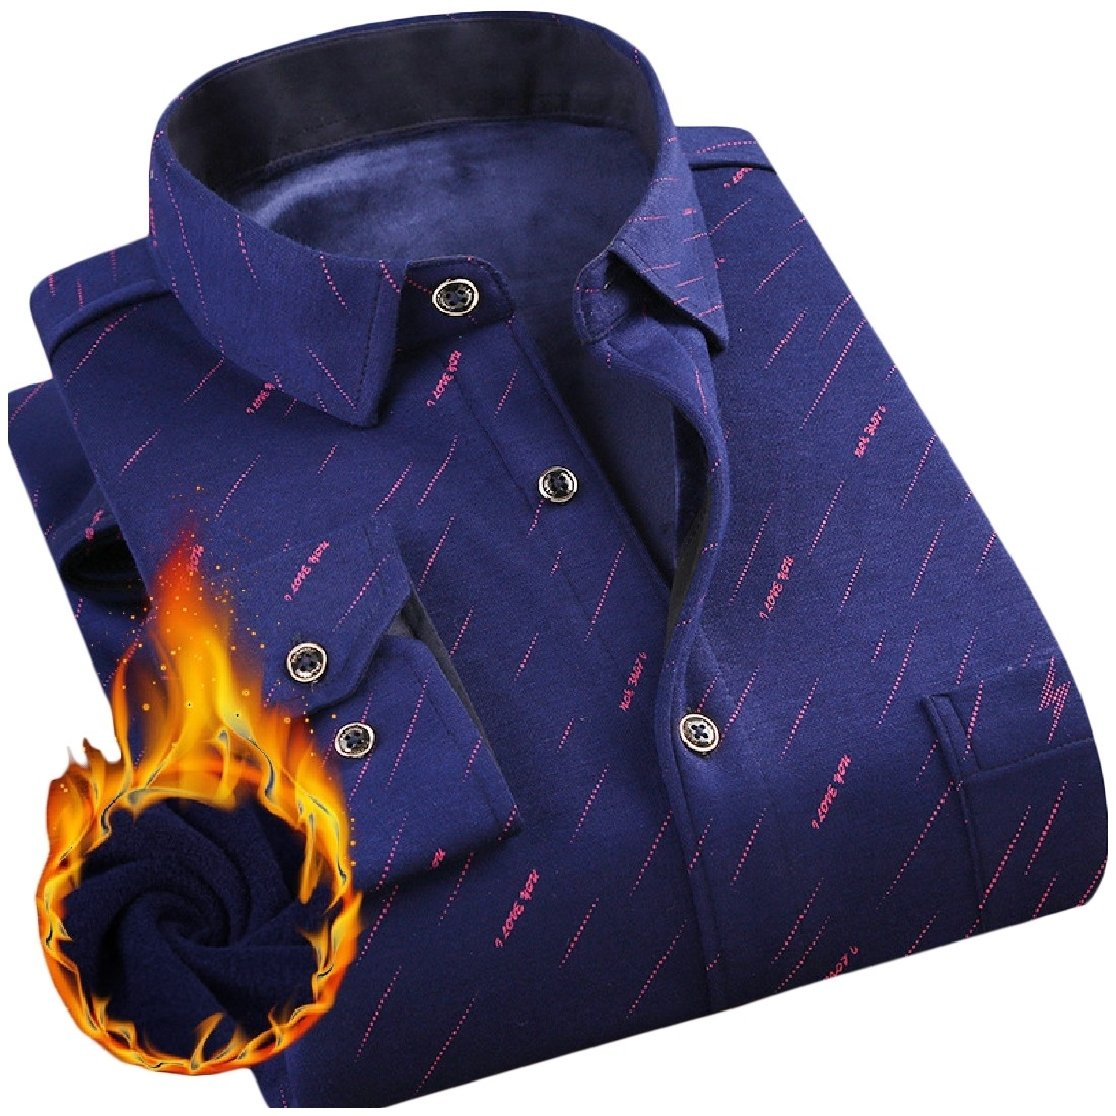 YUNY Mens Lapel Warm Long Sleeve Buttons Flannel Printing Thicken Dress Shirt AS6 M